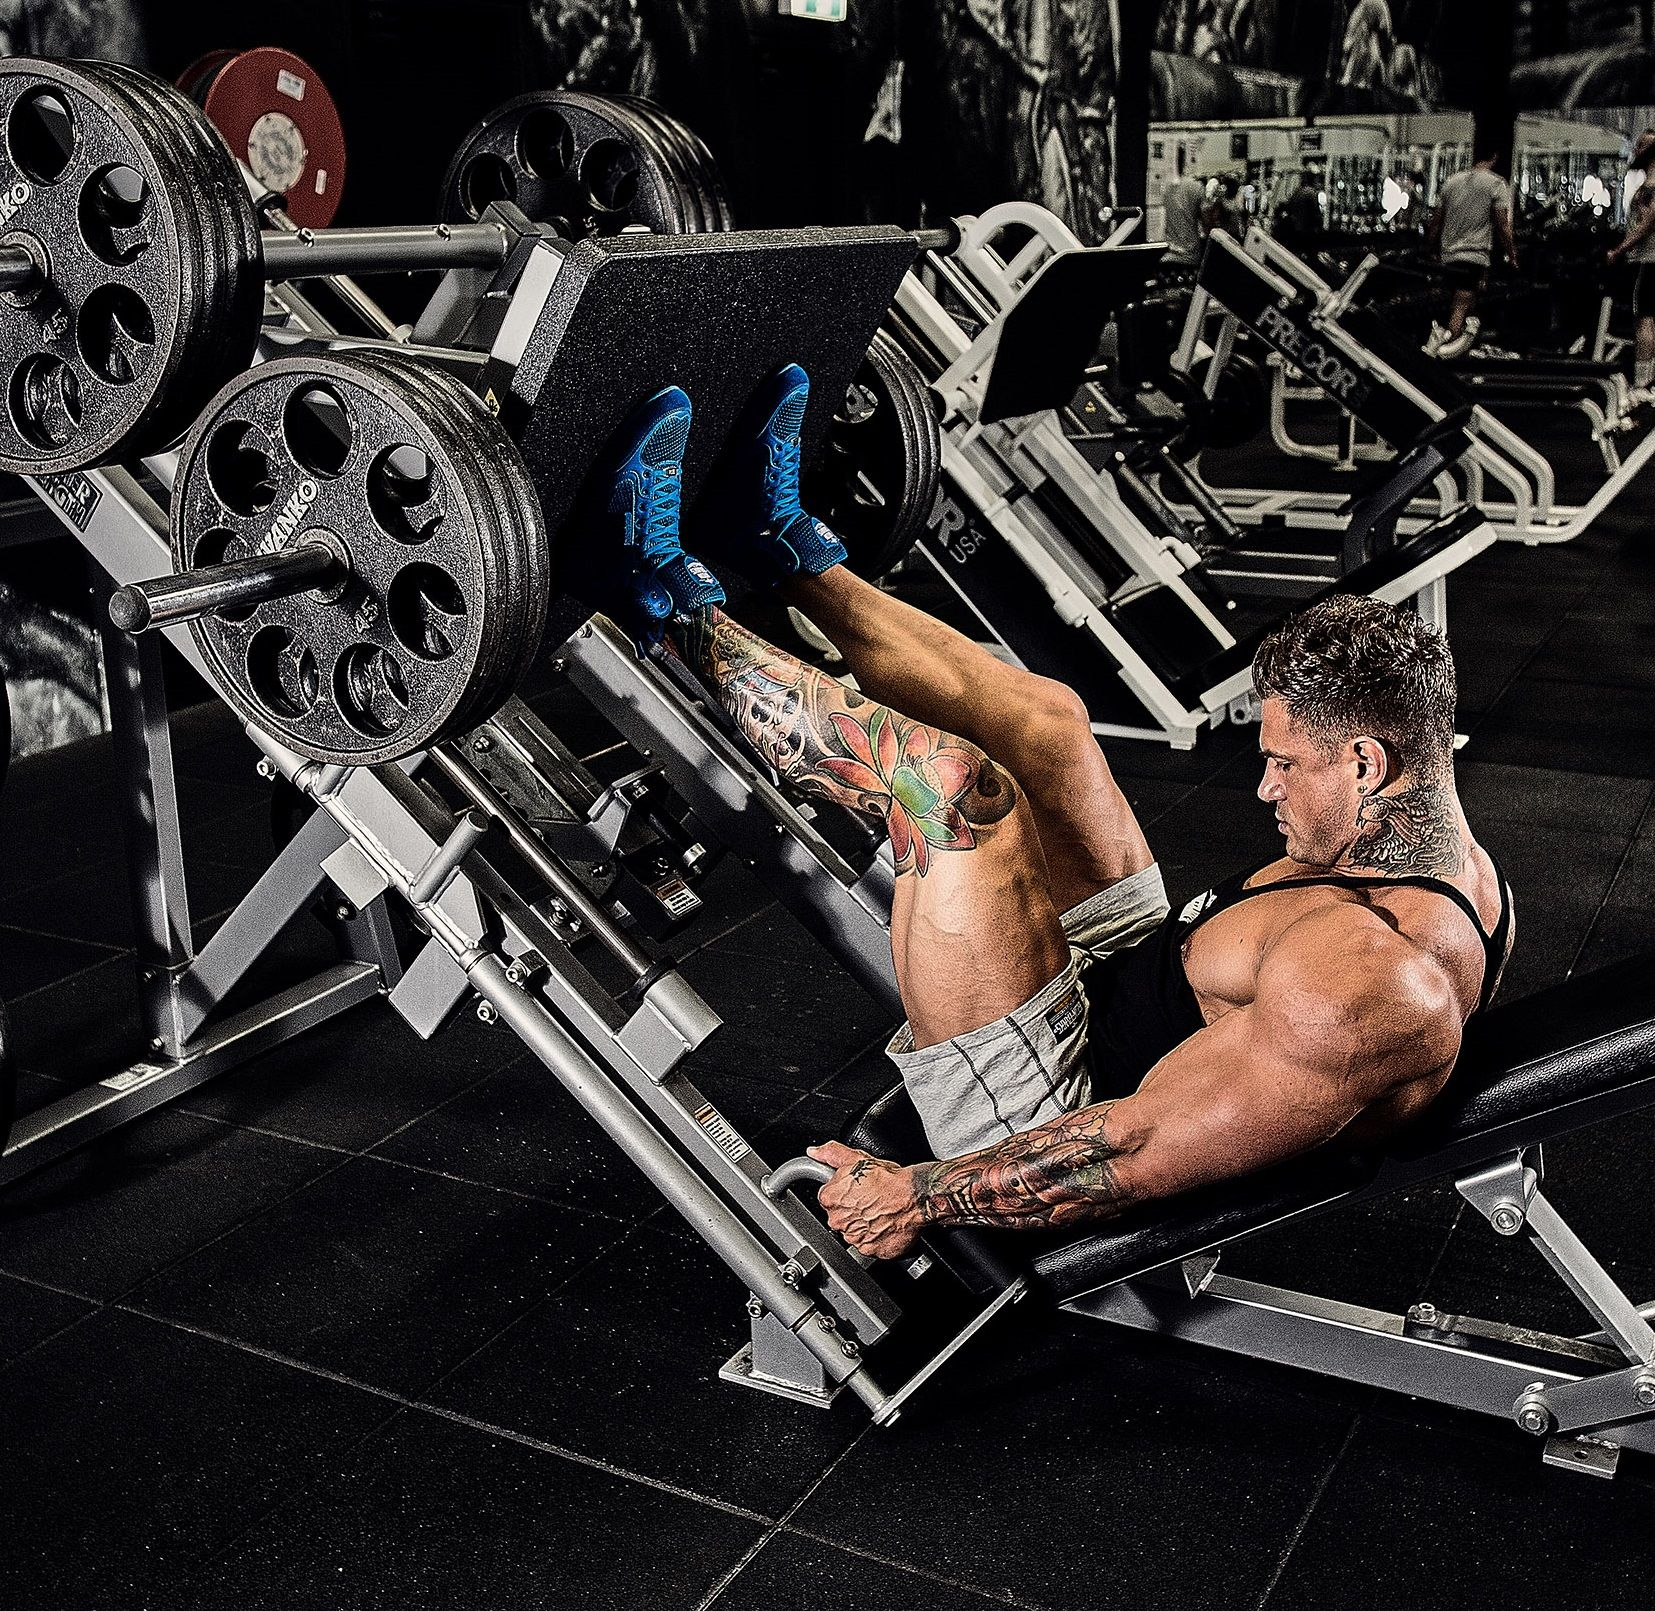 You Can Only Be Legendary After Leg Day Chris Webb In An All Iron Setup Putting In The Ho Muscle Building Workouts Core Workout Videos Good Back Workouts